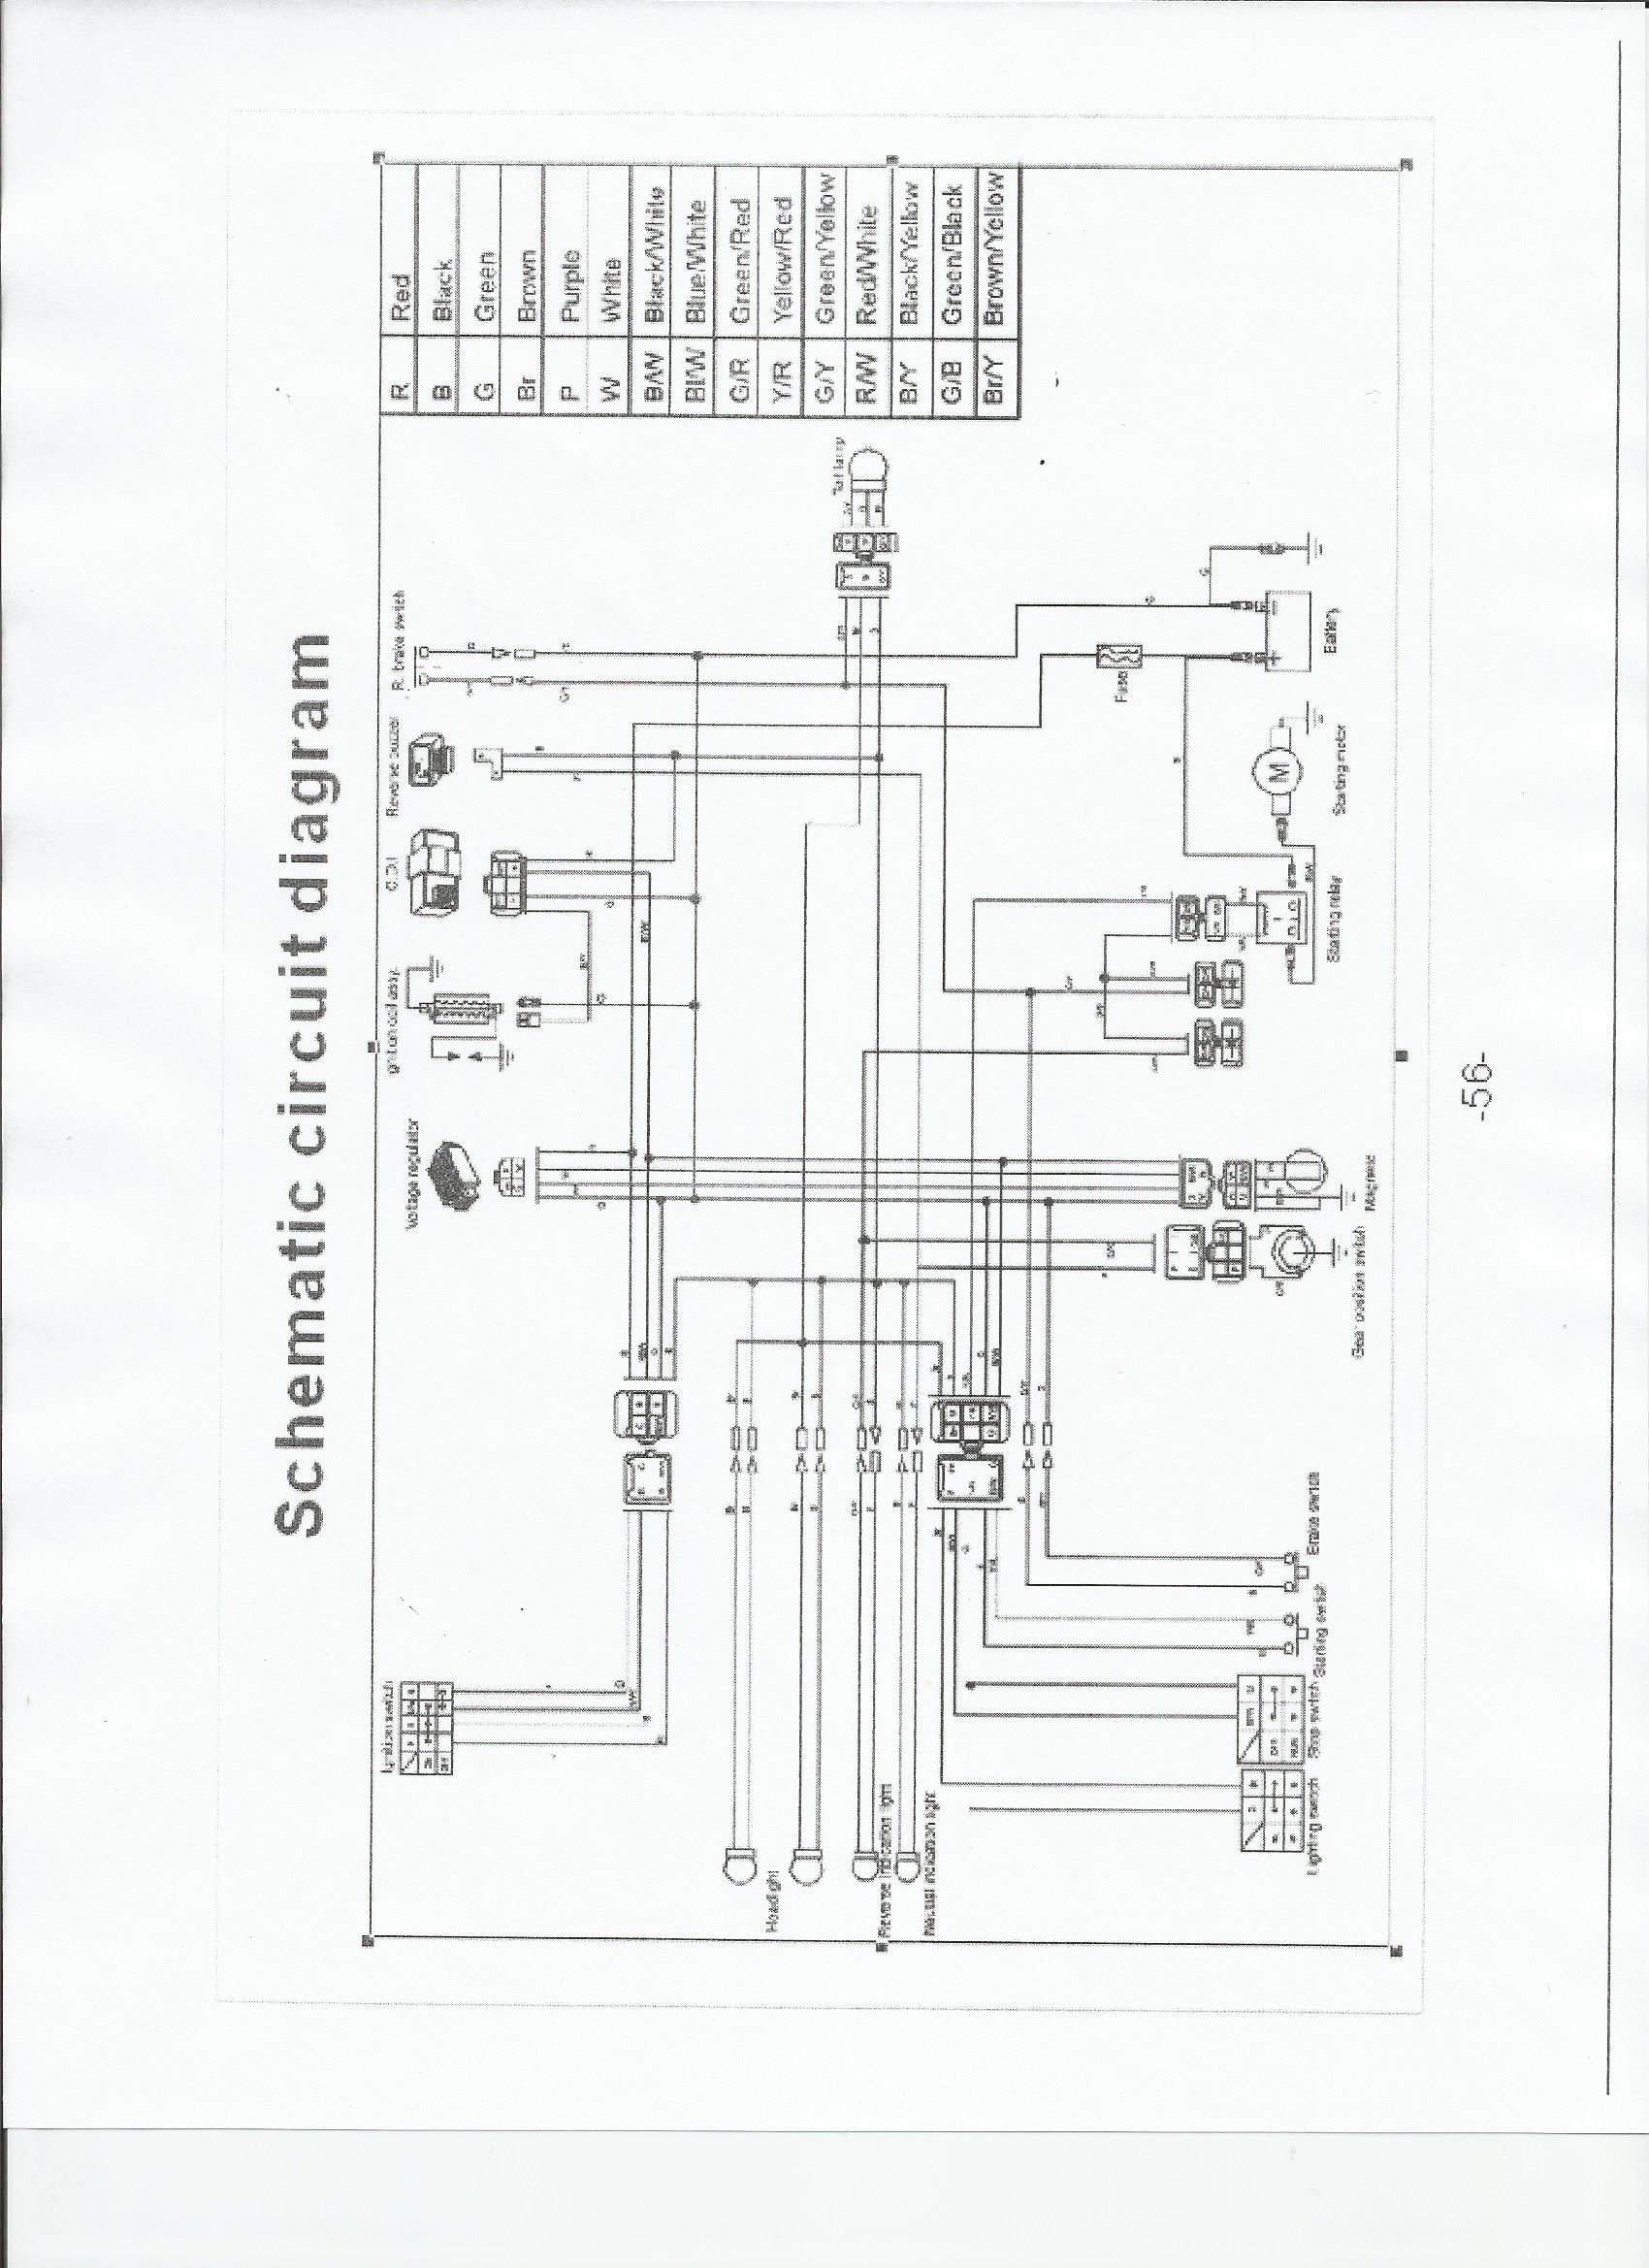 tao tao wiring schematic taotao mini and youth atv wiring schematic familygokarts support sunl atv wiring diagram 49cc at crackthecode.co